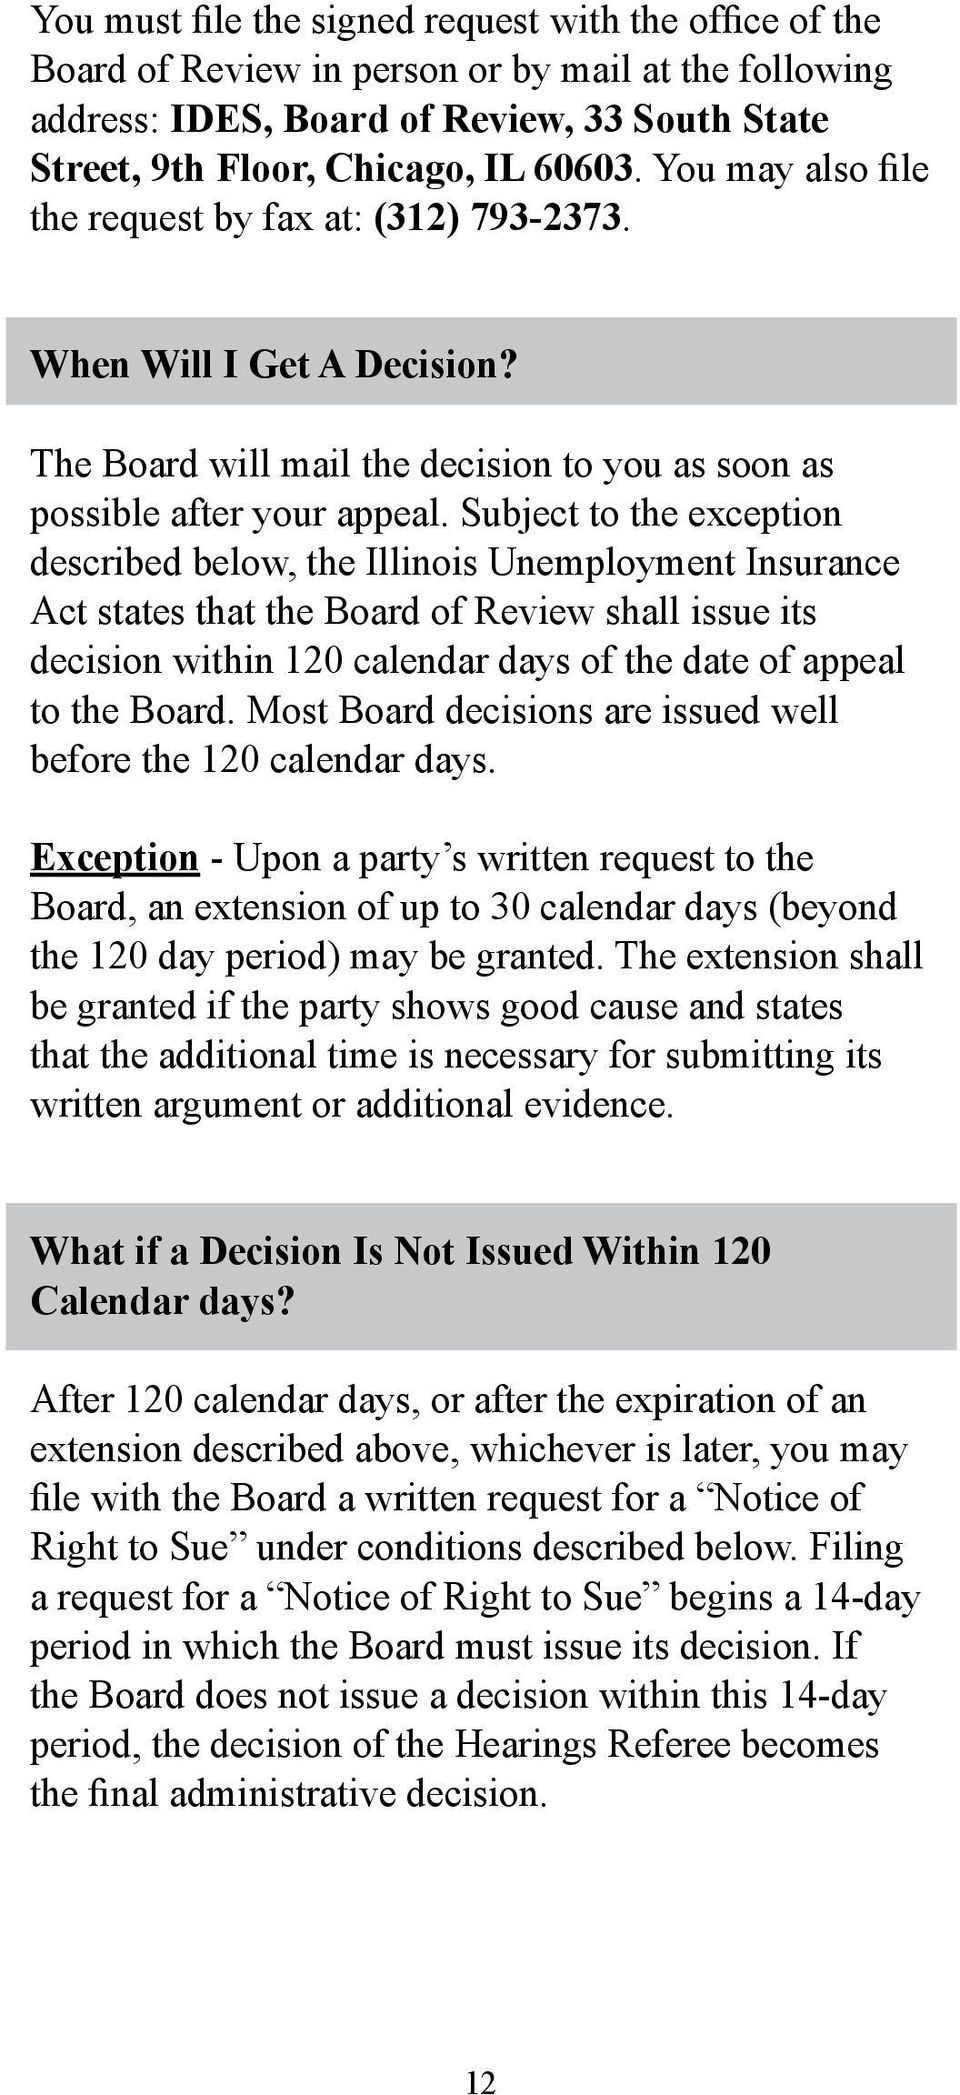 Subject to the exception described below, the Illinois Unemployment Insurance Act states that the Board of Review shall issue its decision within 120 calendar days of the date of appeal to the Board.